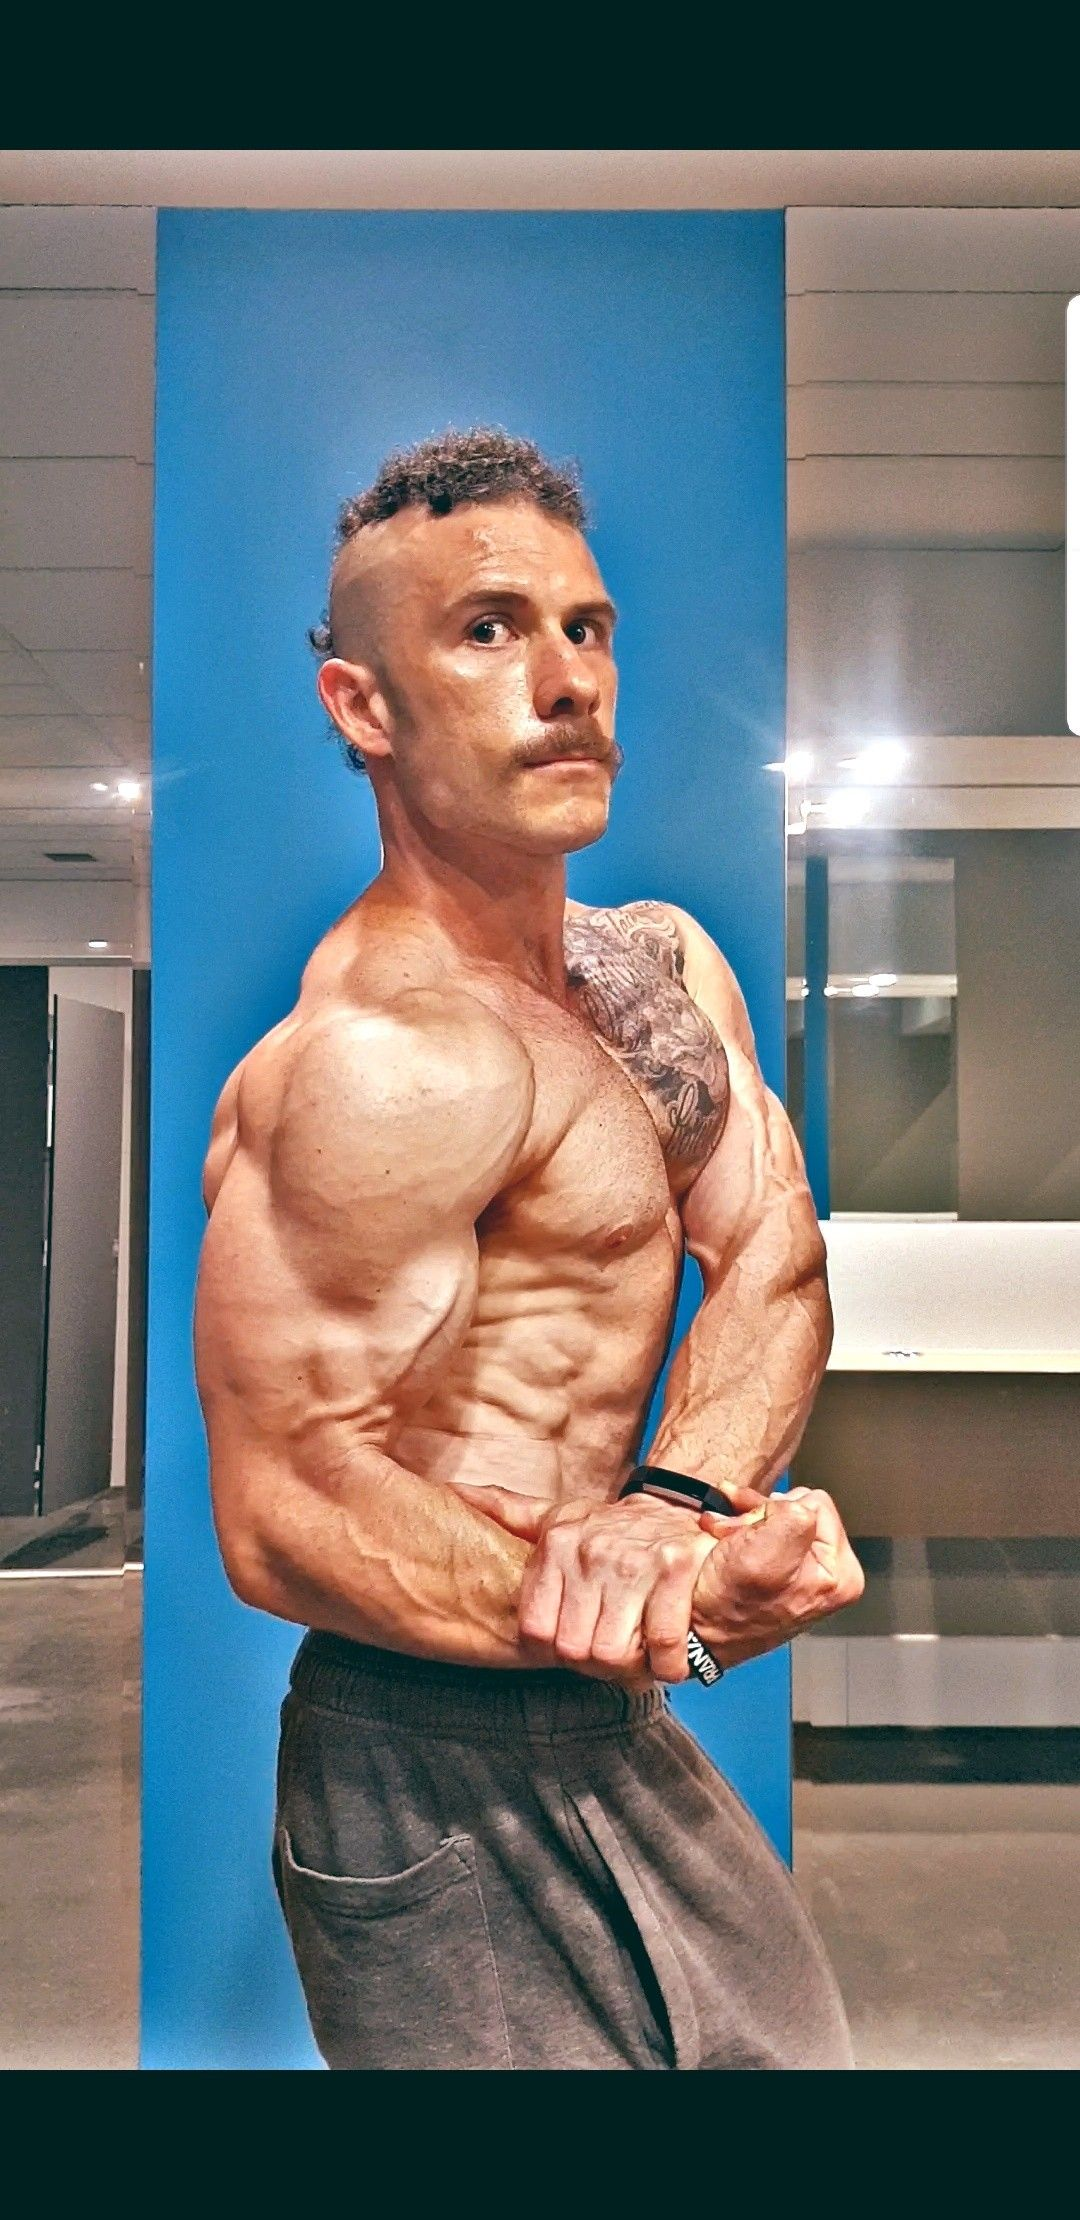 Displaying the oldschool art form of bodybuilding Bodybuilding Photo video I am awesome